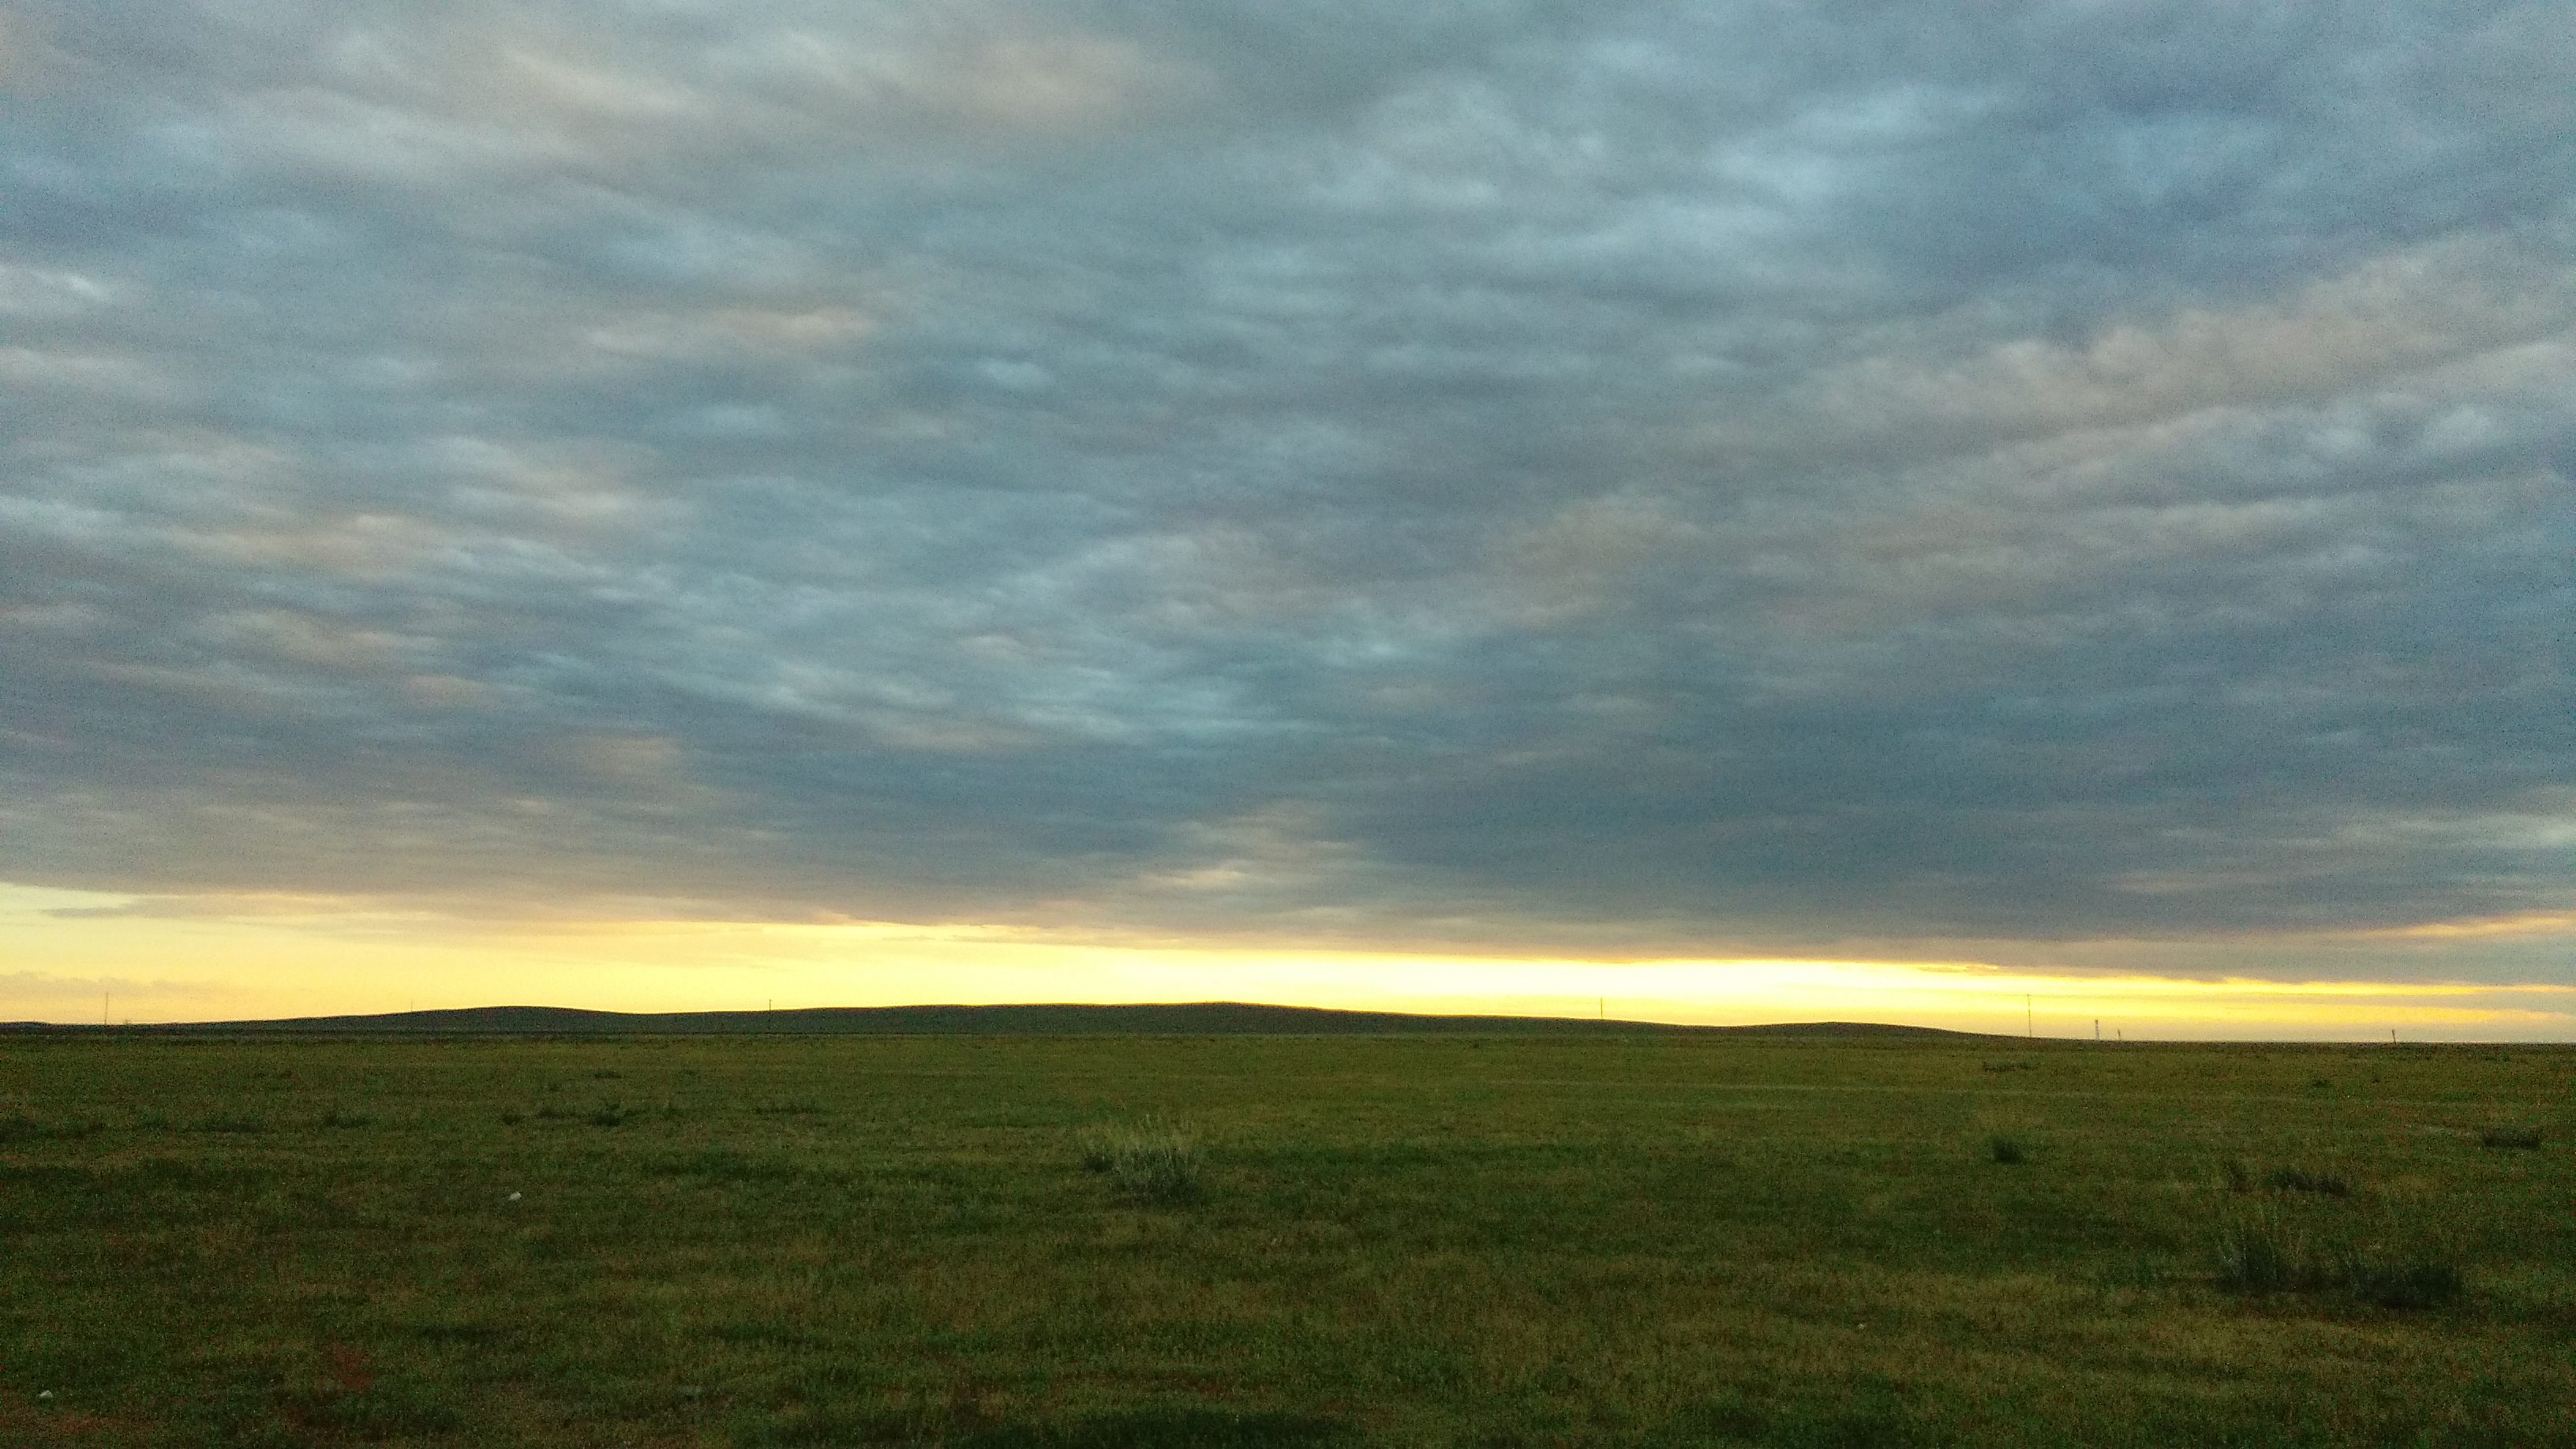 In the evening, where I pitched the tent. Grass is green.